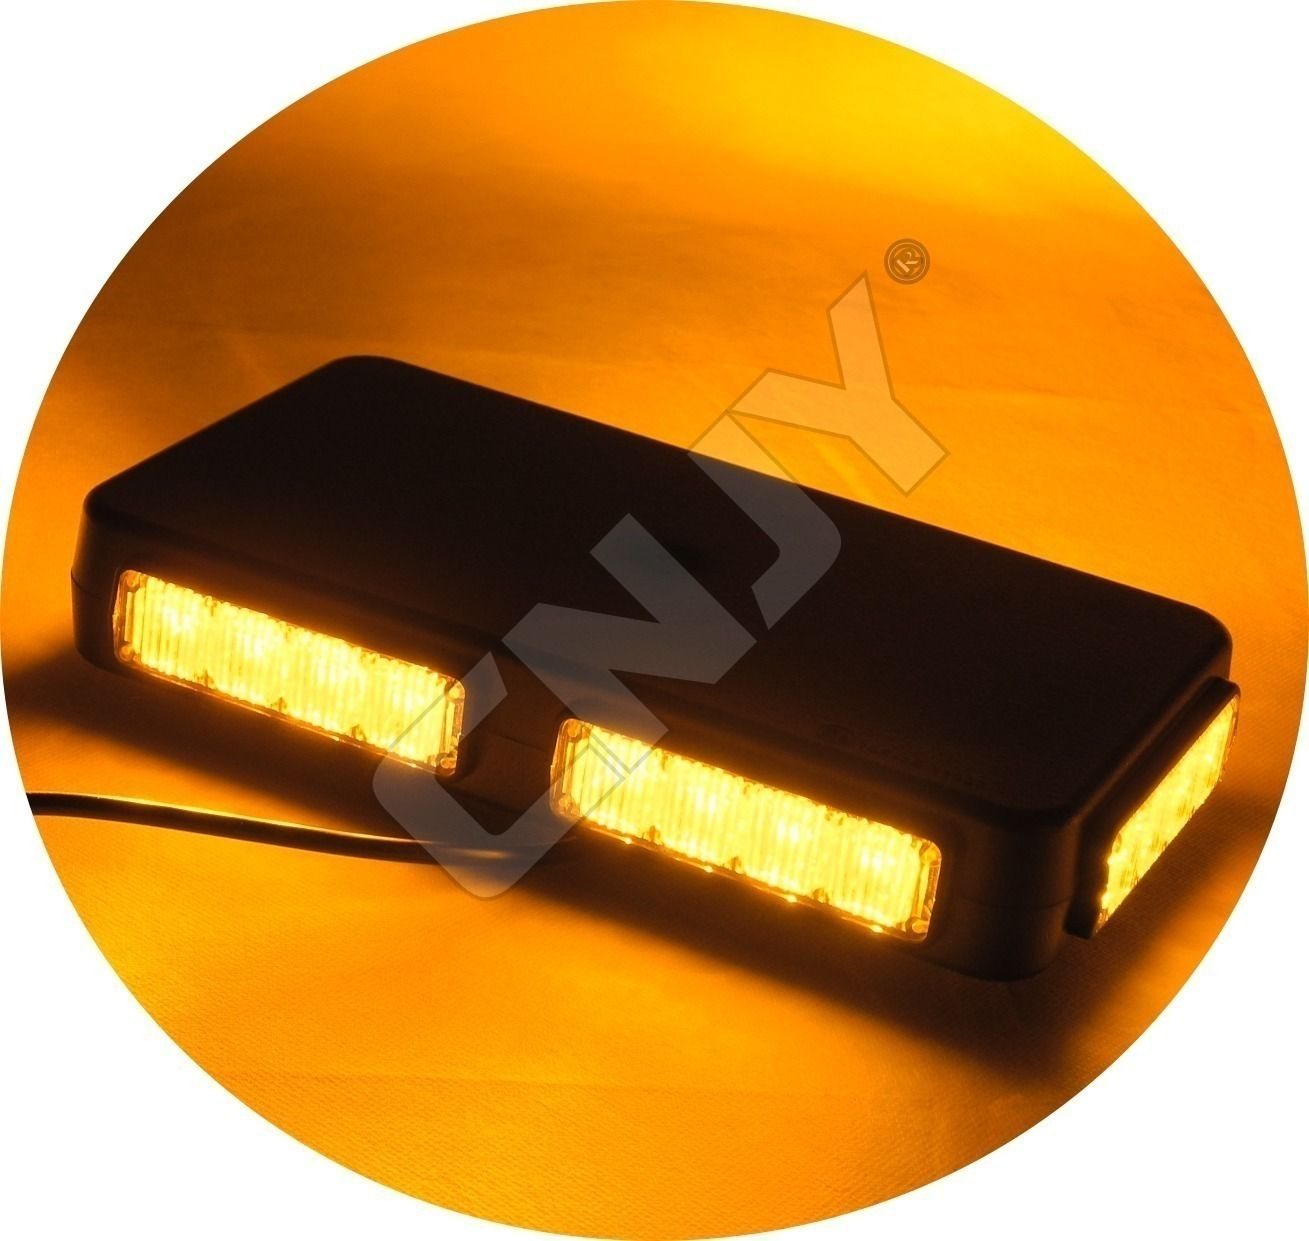 gyrophare,led,light,beacon,gyroled,bleu,blue,amber,green,orange,vert,aimante,fiche,allume,cigare,rotatif,flash,12v,24v,dc,homologué,e9,étanche,moto,camion,depanneuse,de toit